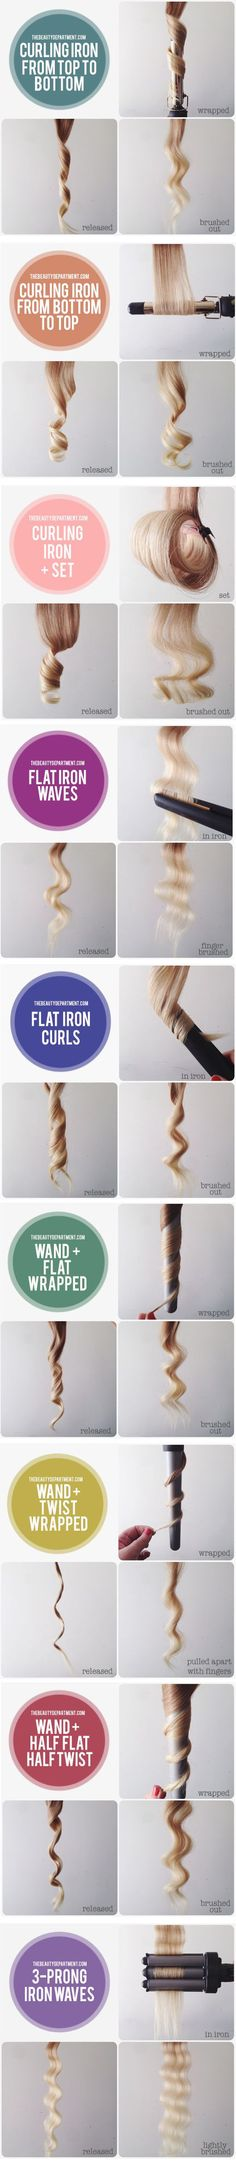 Types of curls - http://thebeautydepartment.com/2014/04/types-of-curl/: